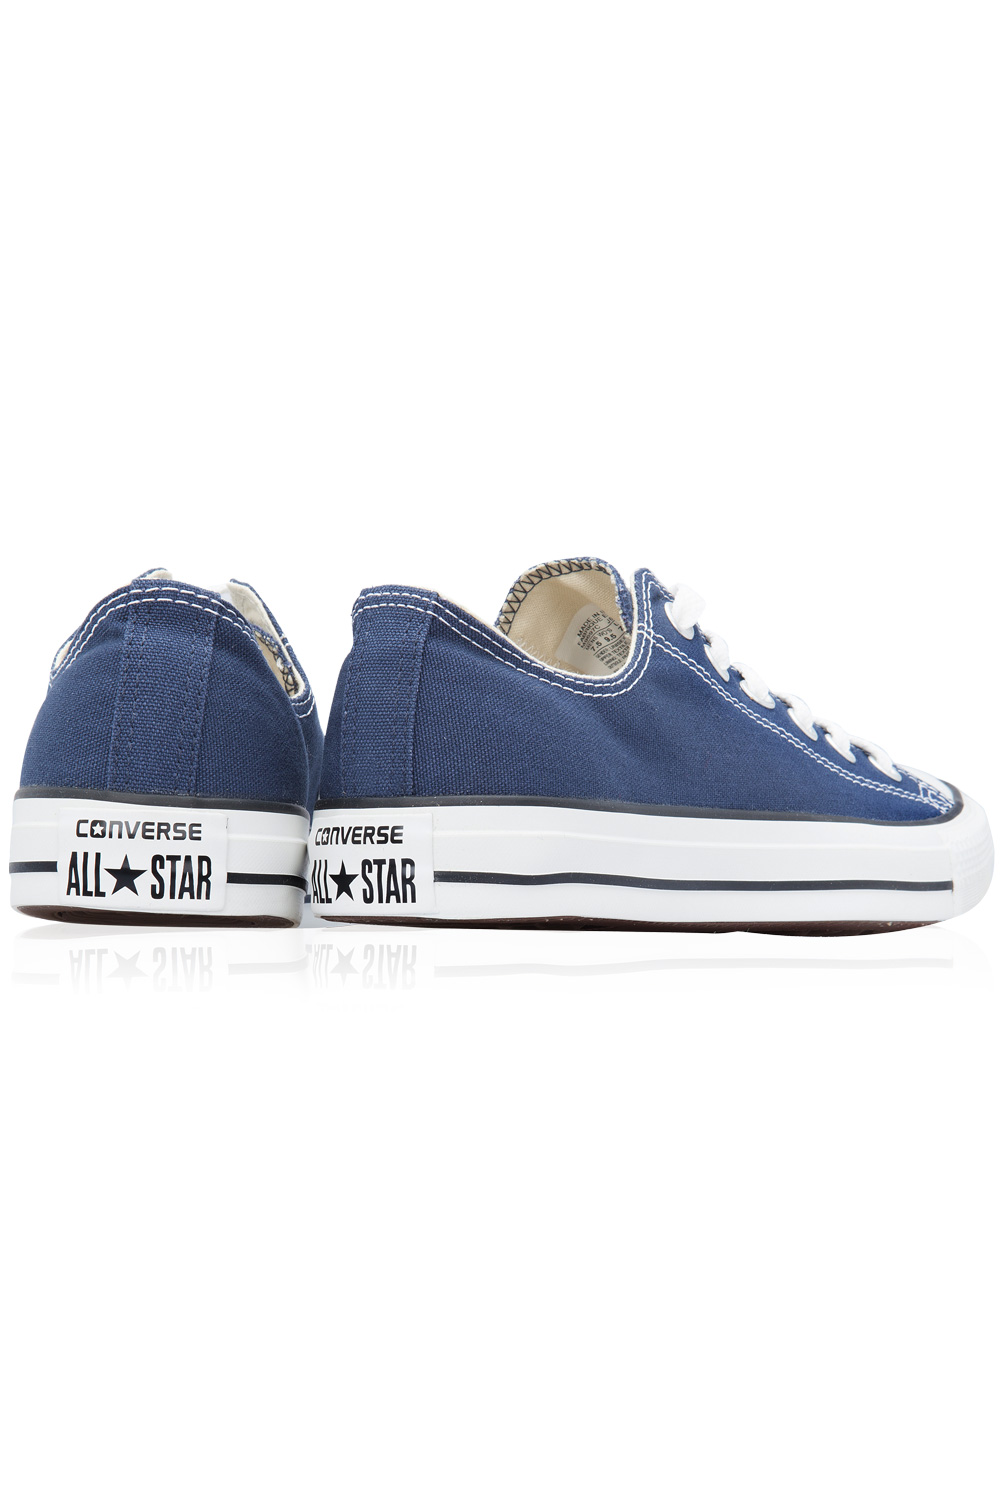 ... converse-ct-chuck-taylor-as-core-navy ... 607fdf3a6341